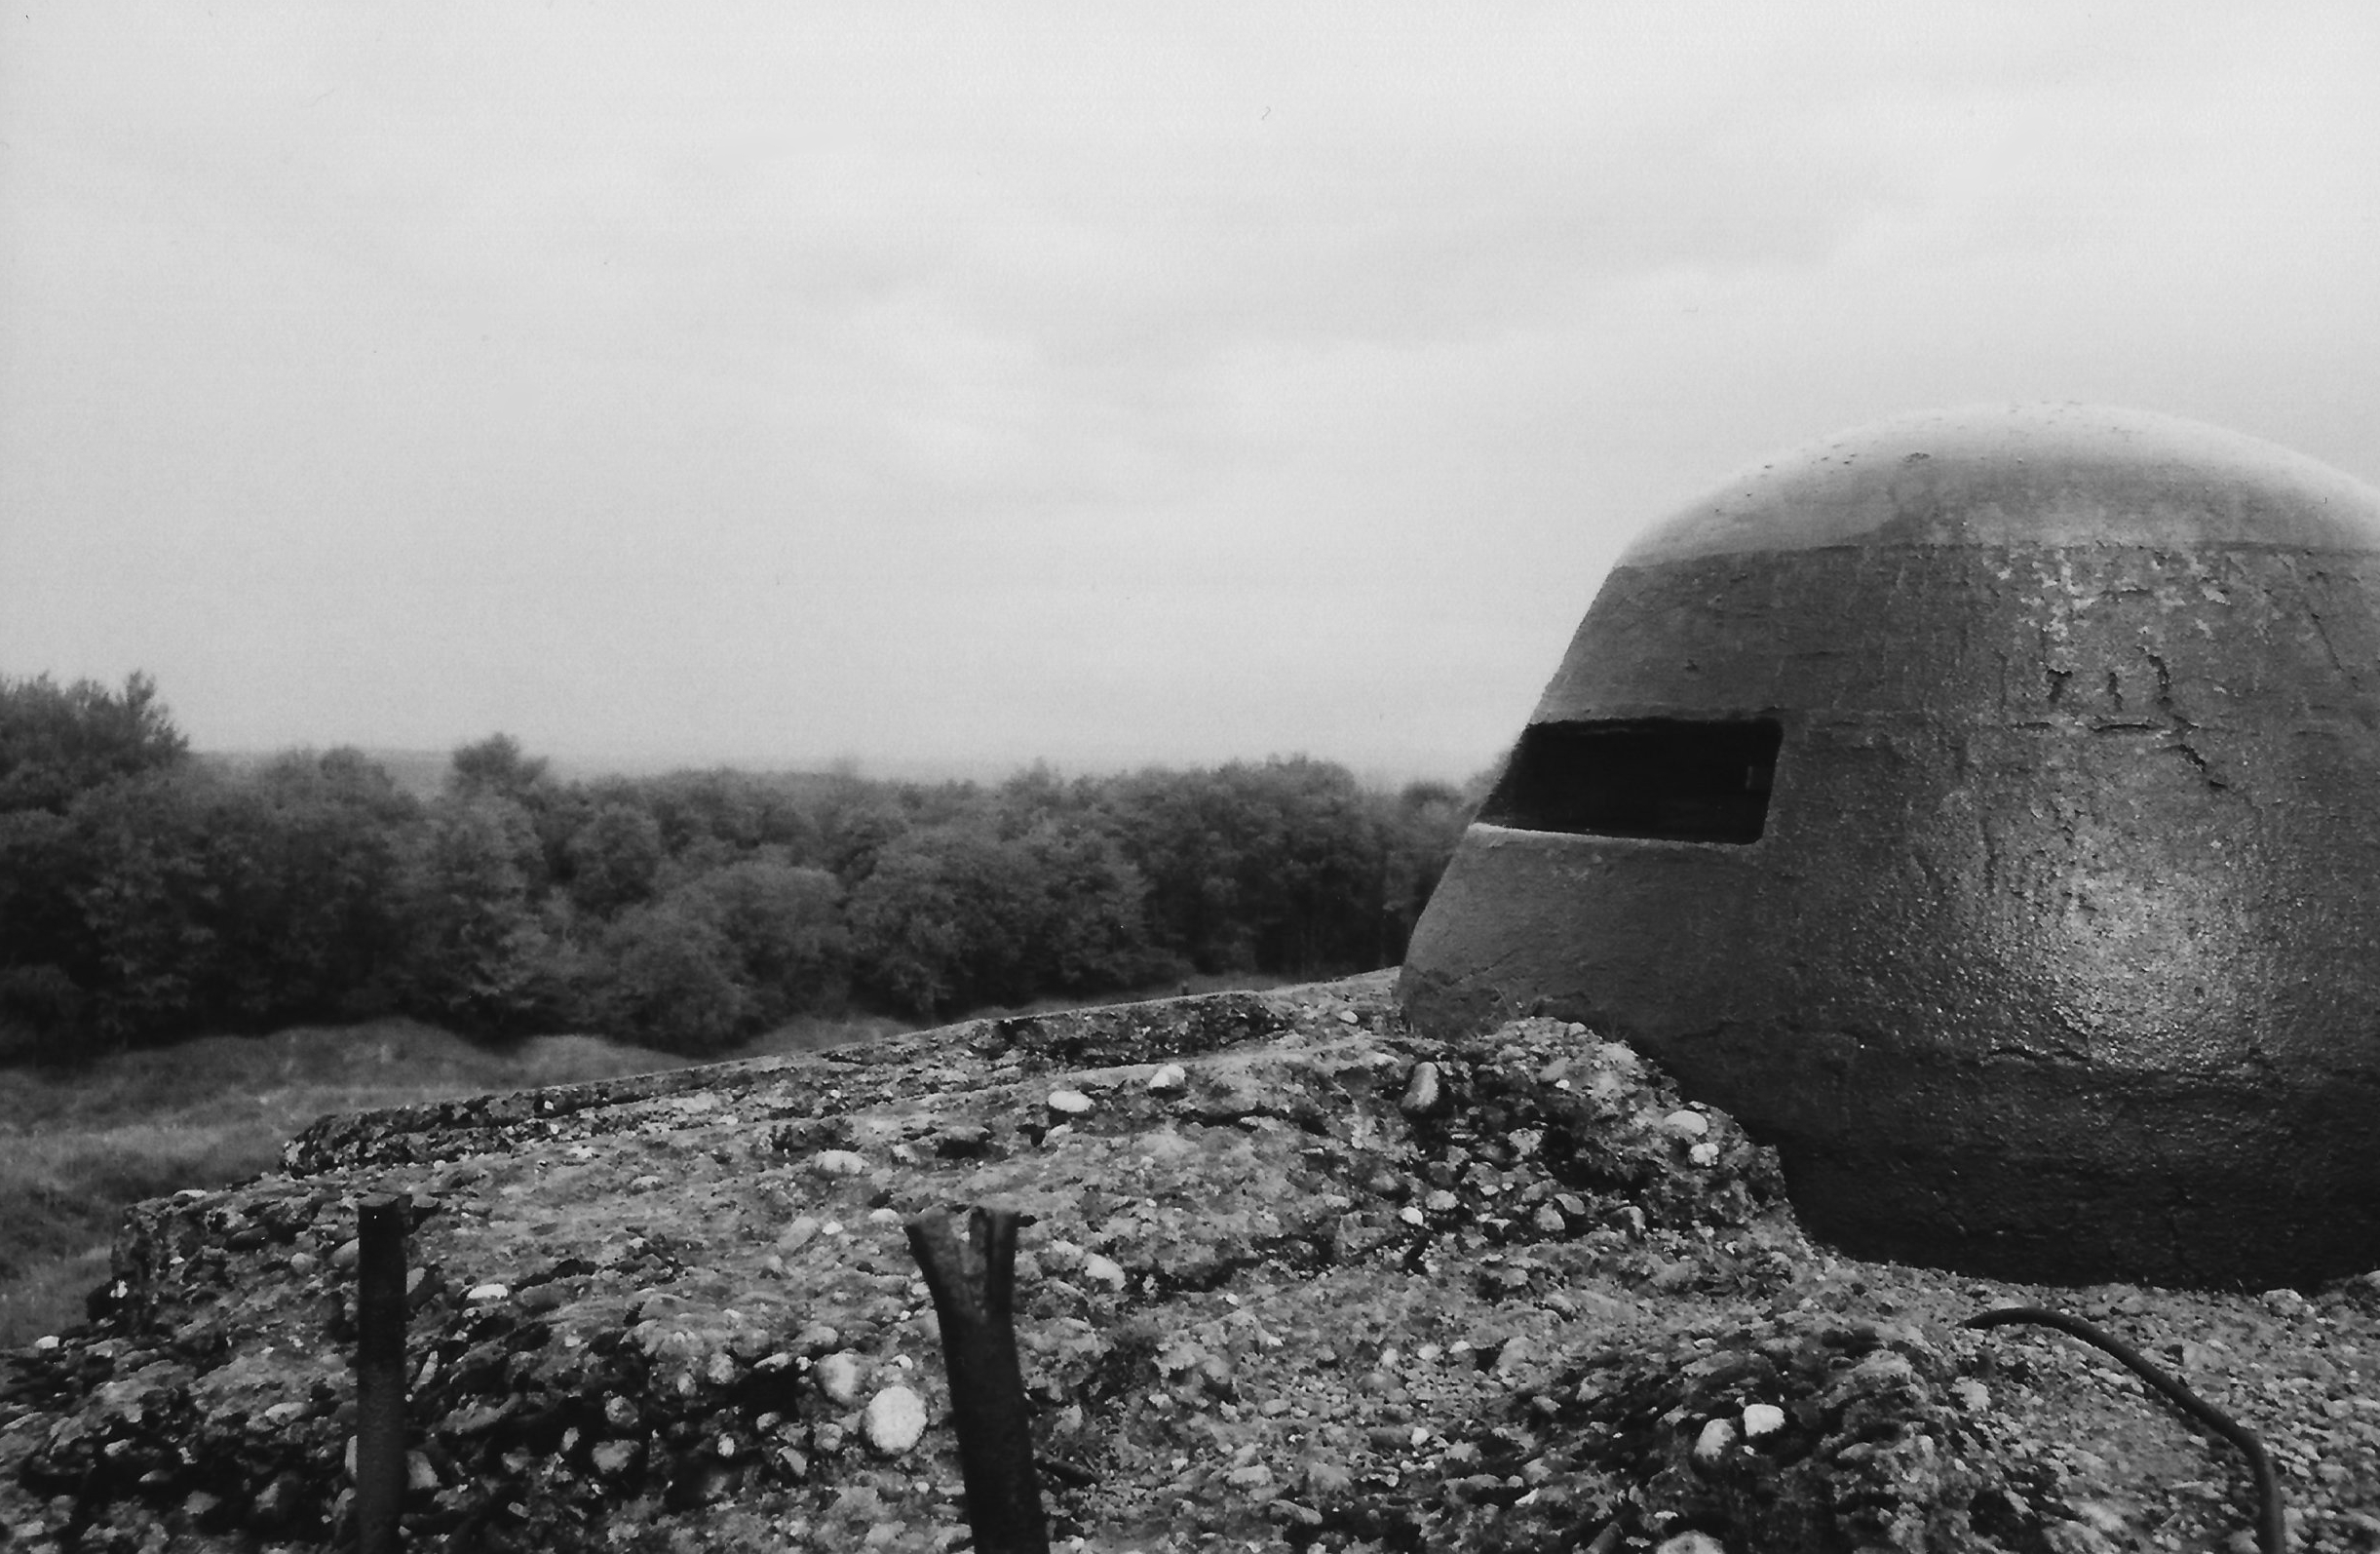 One of the observation domes on Fort du Douaumont near Verdun.